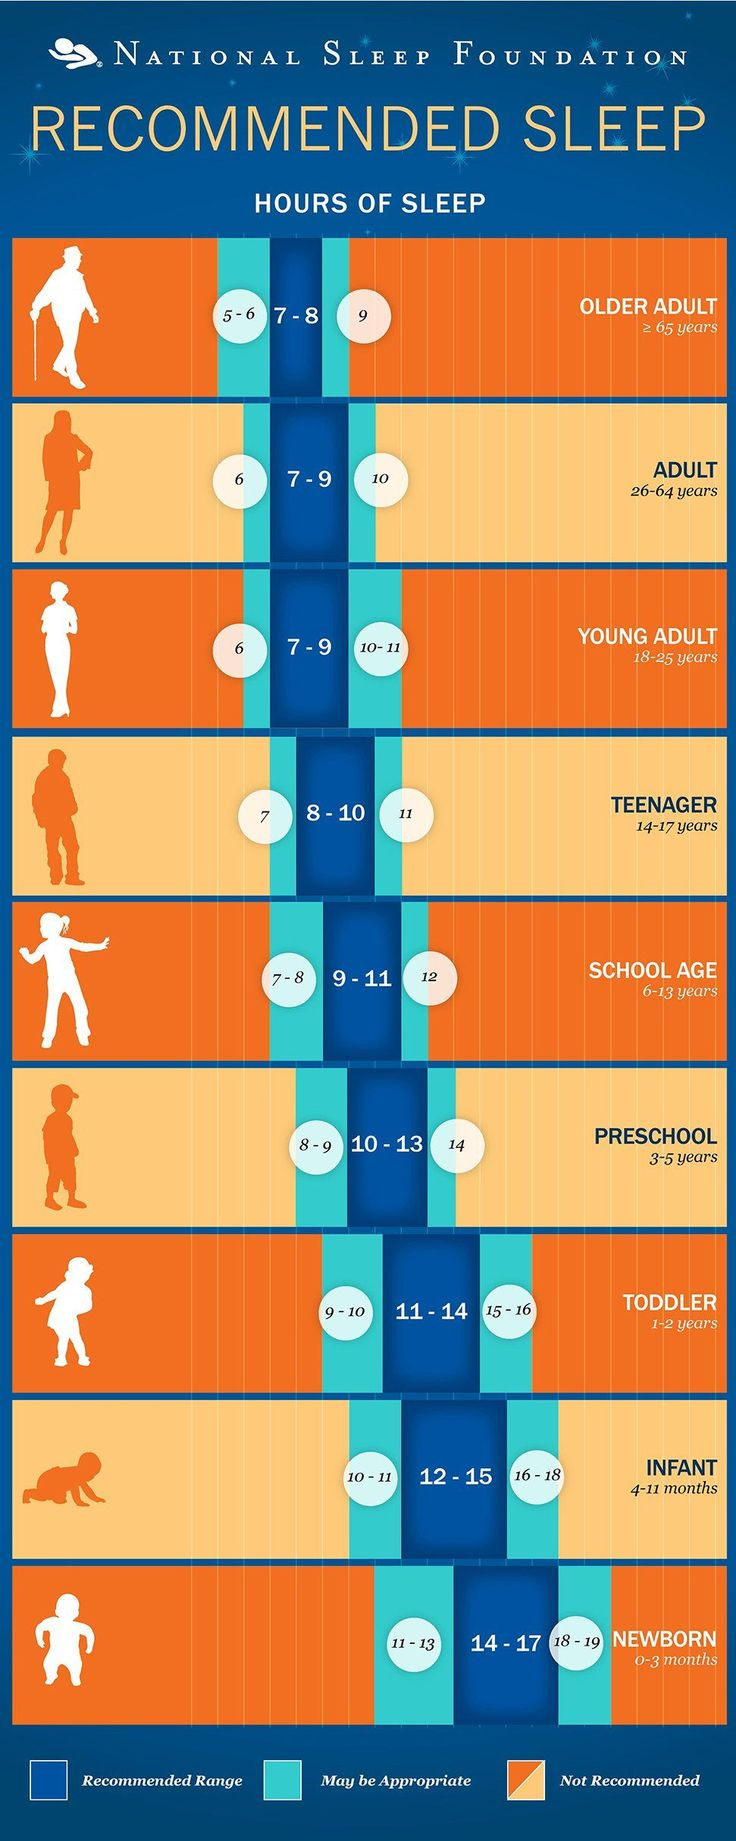 This Is How Much Sleep We Really Need According To the National Sleep Foundation